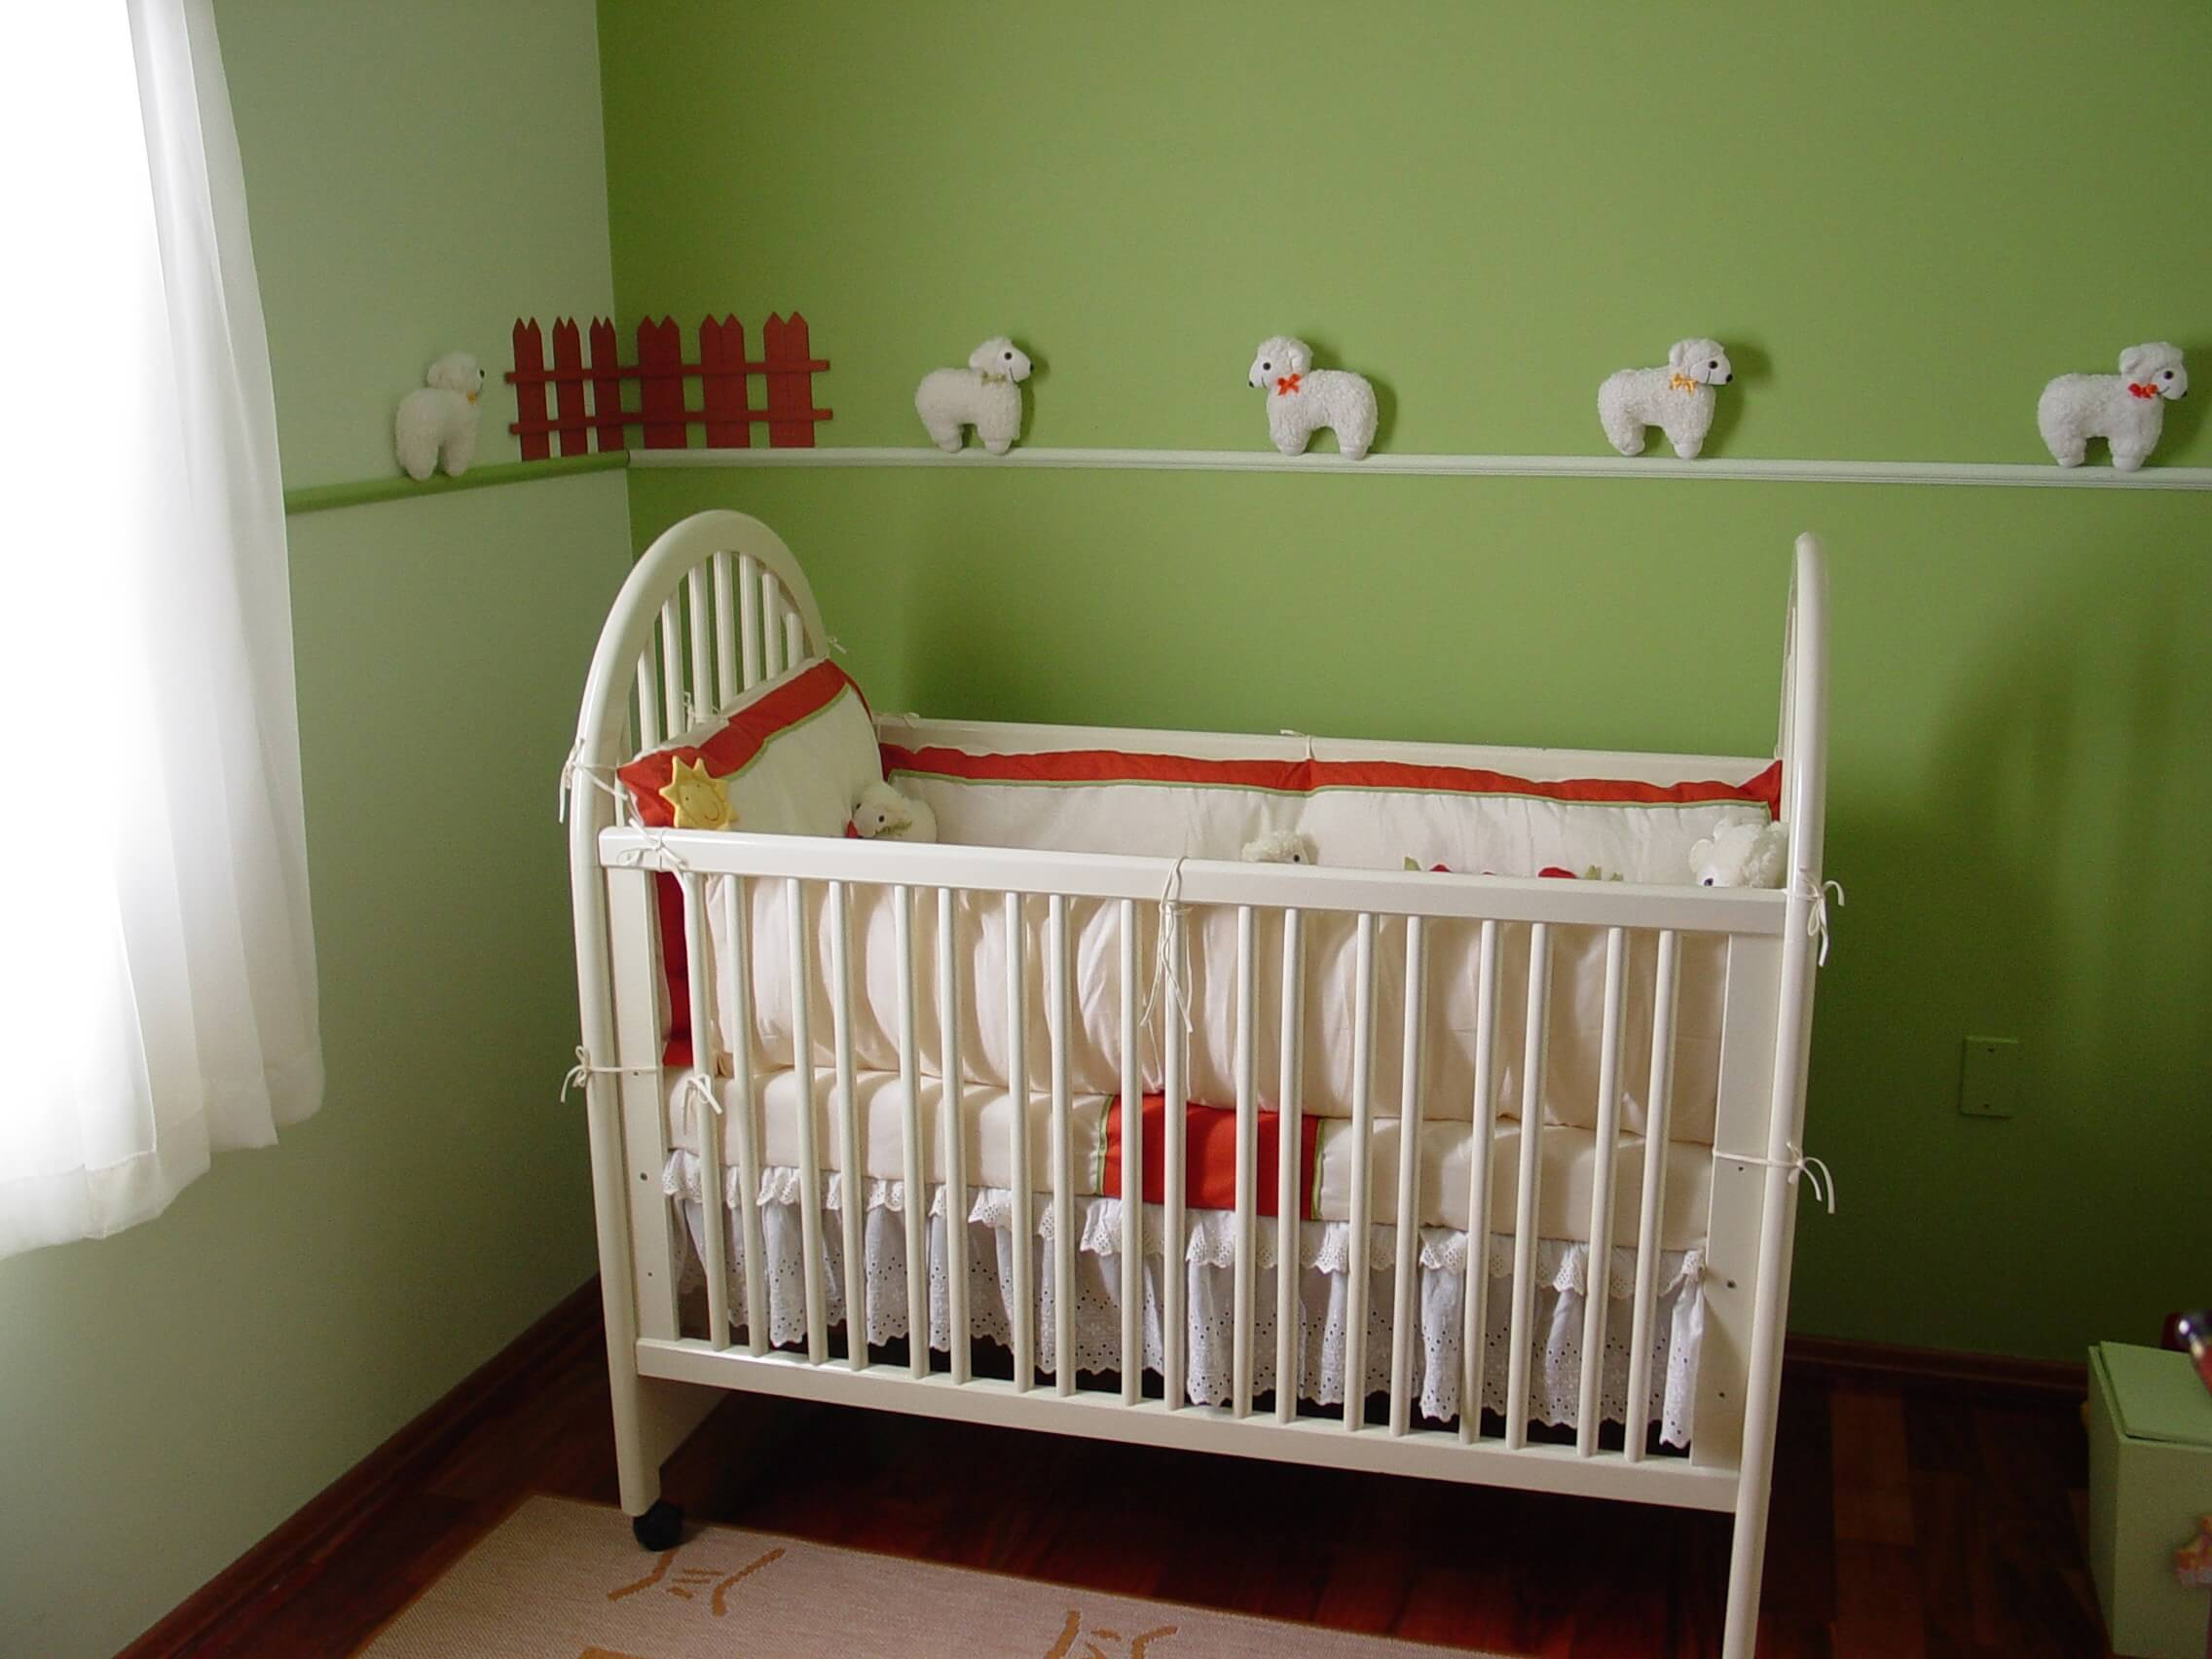 Cot in a room